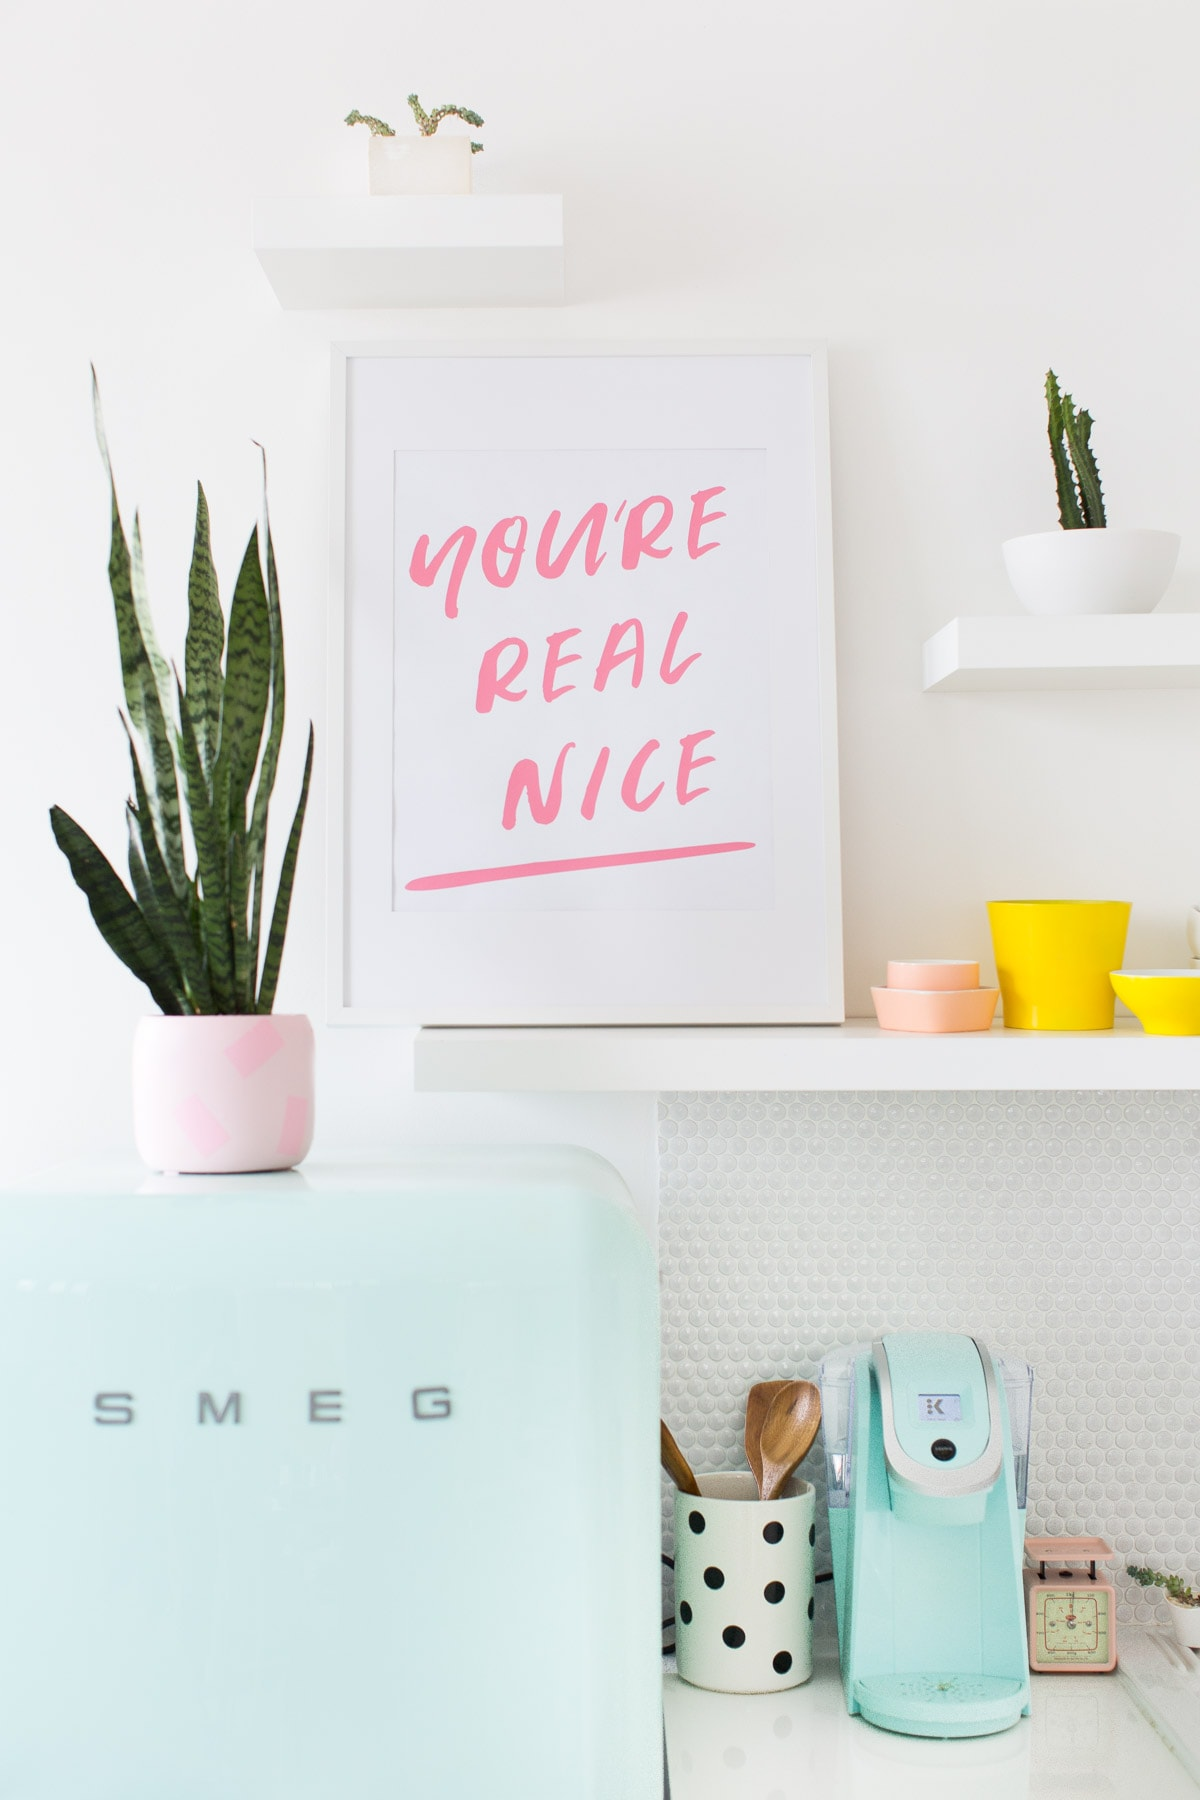 DIY printable inspiration artwork by top Houston lifestyle blogger Ashley Rose of Sugar and Cloth